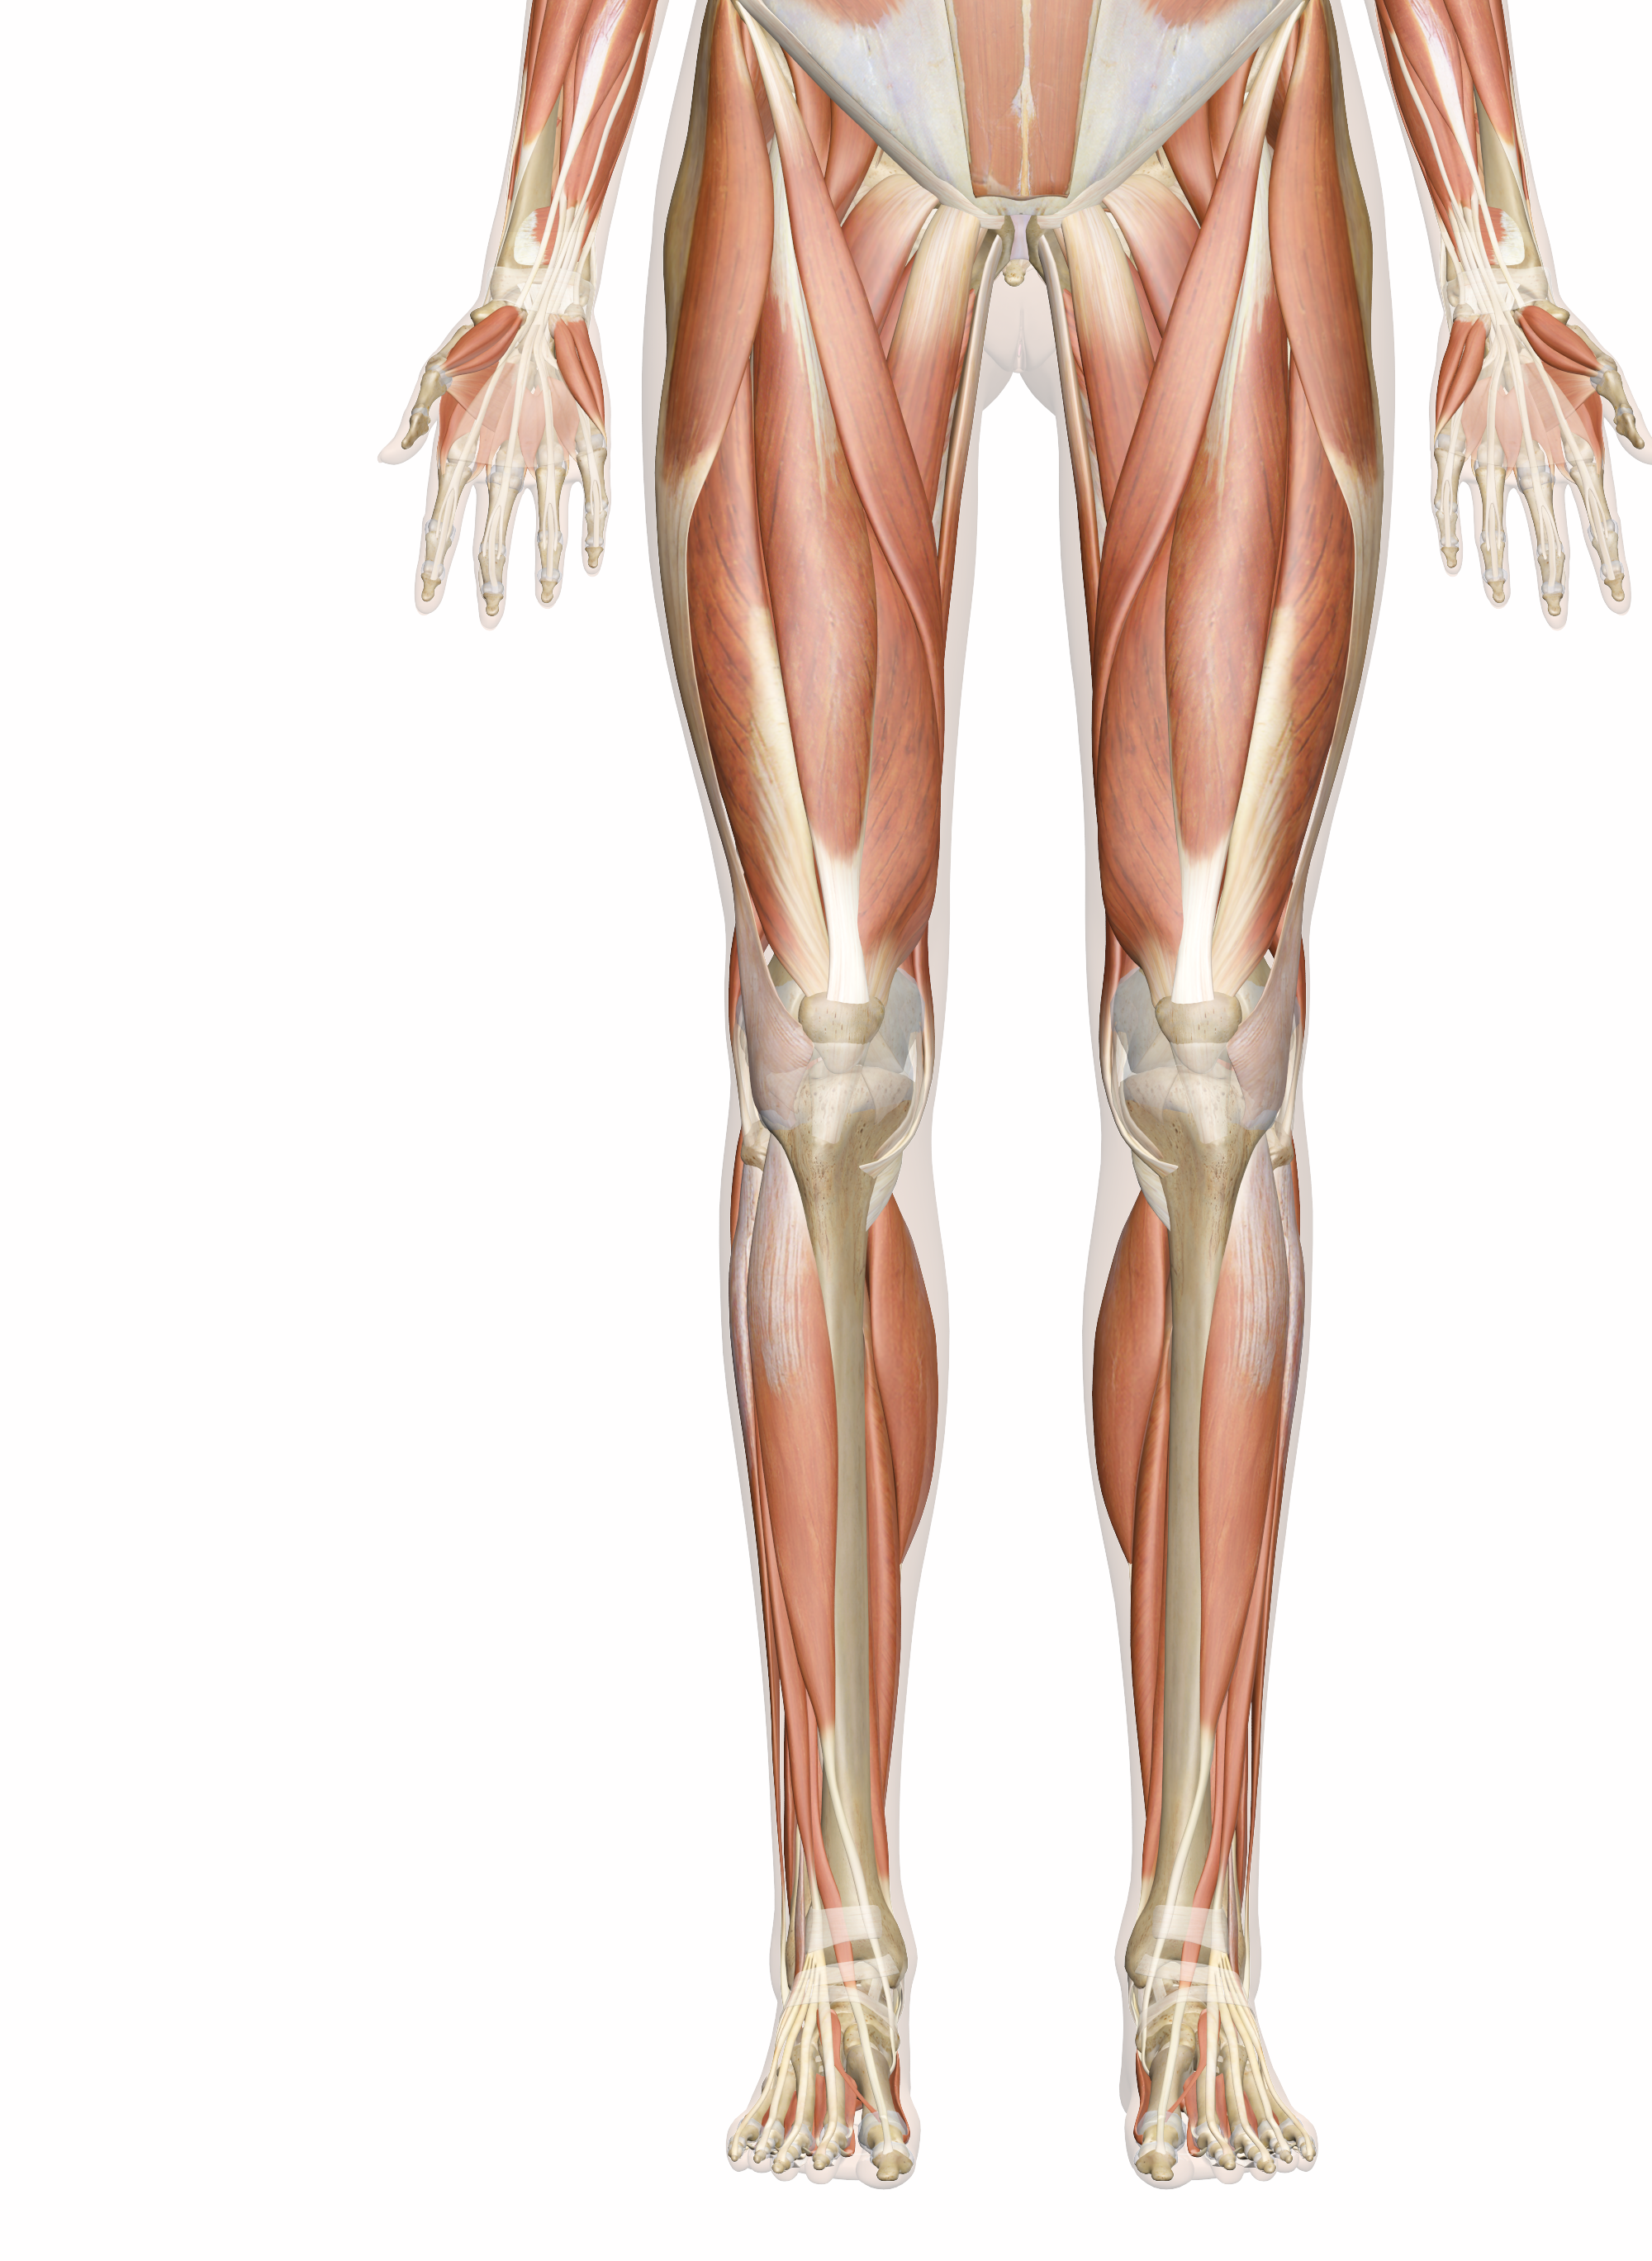 2000x2737 Muscles Of The Leg And Foot